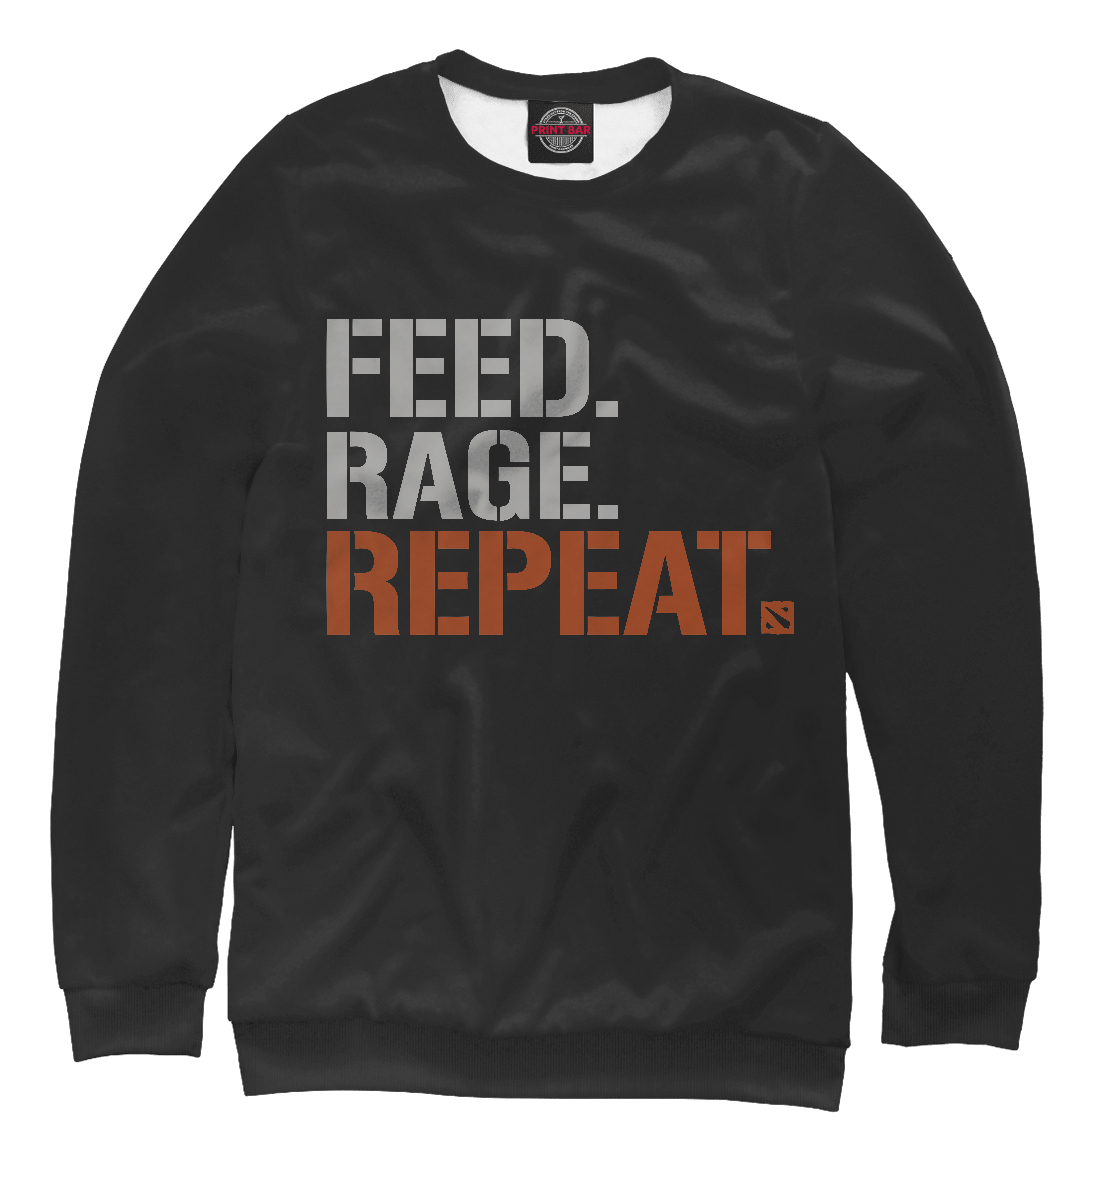 Купить Feed Rage Repeat, Printbar, Свитшоты, DO2-149356-swi-1